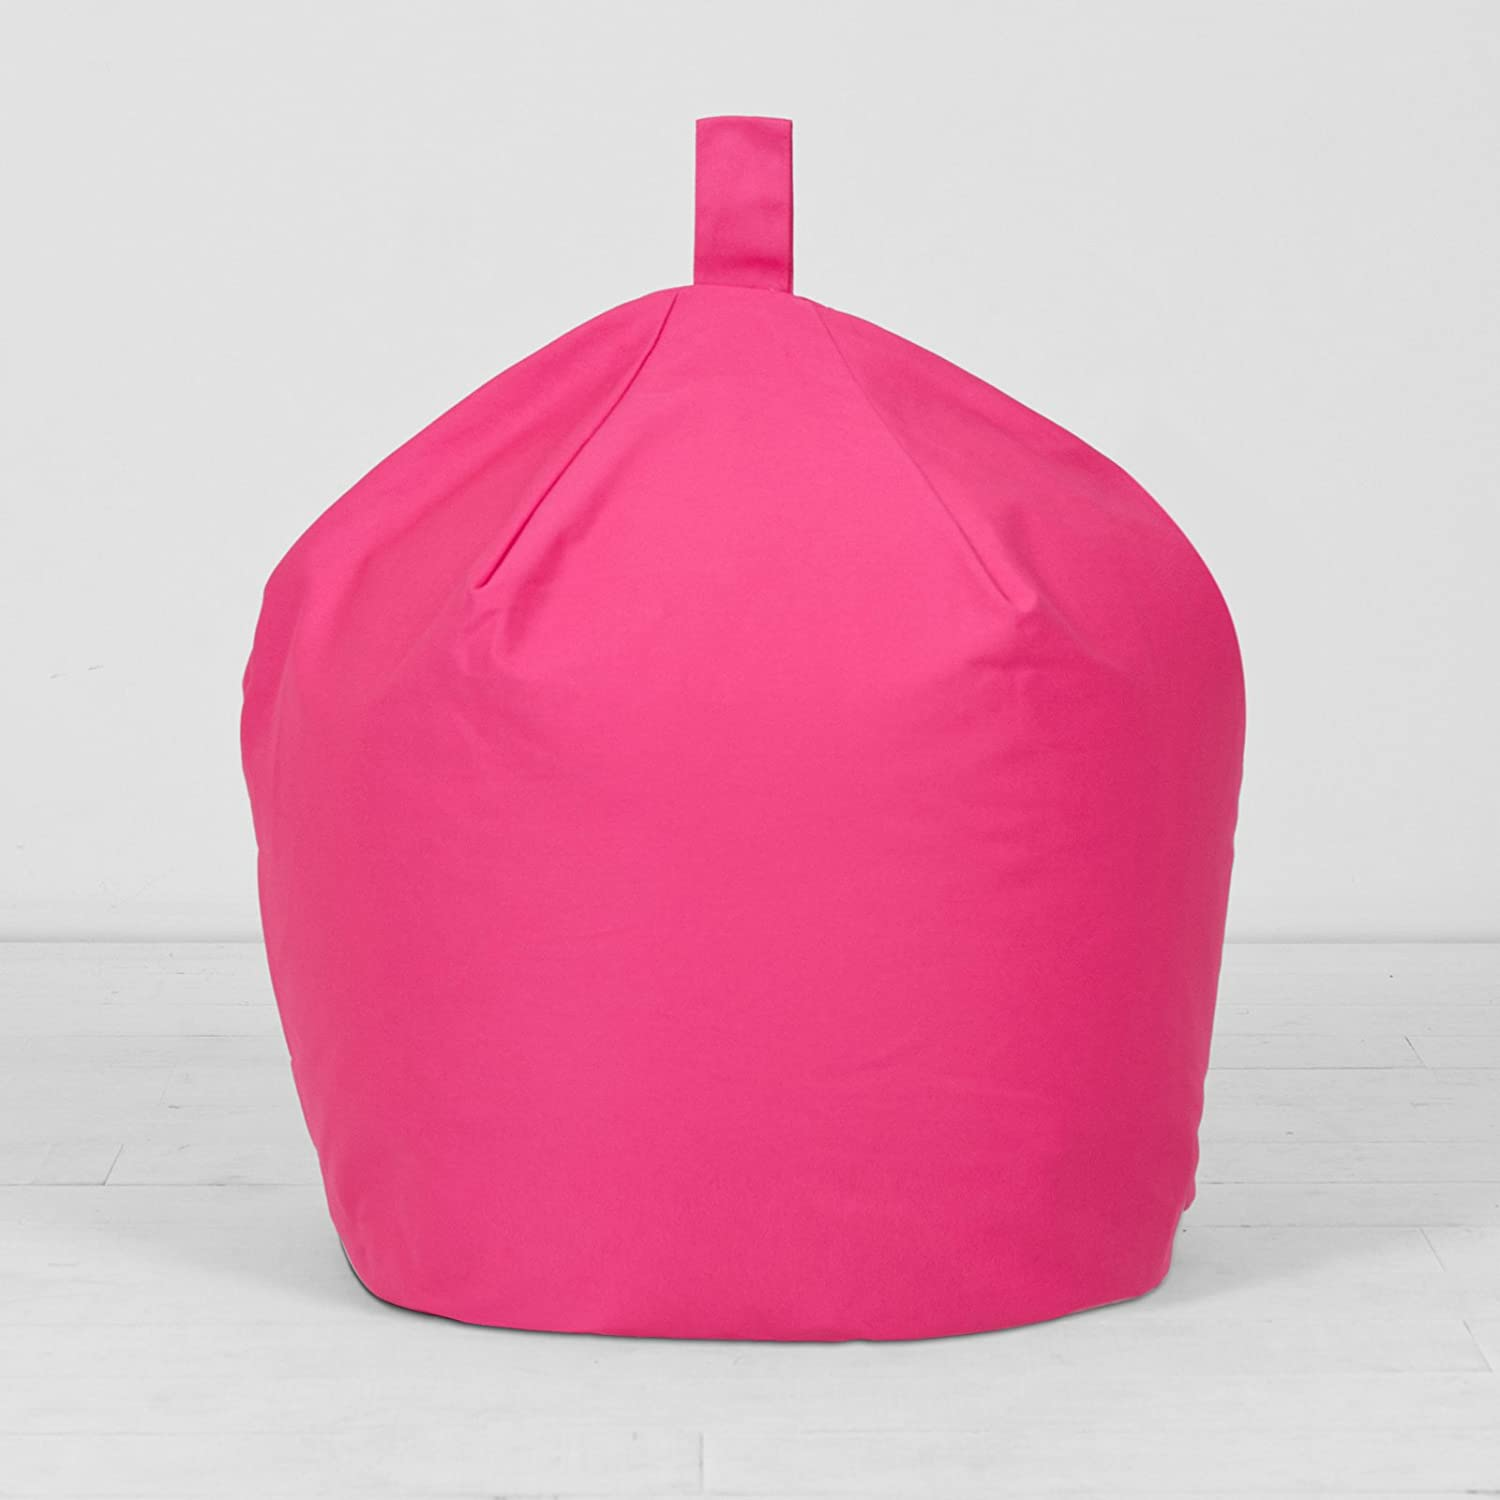 Large Hot Pink Bean Bag Chair For Kids Adults 100 Cotton